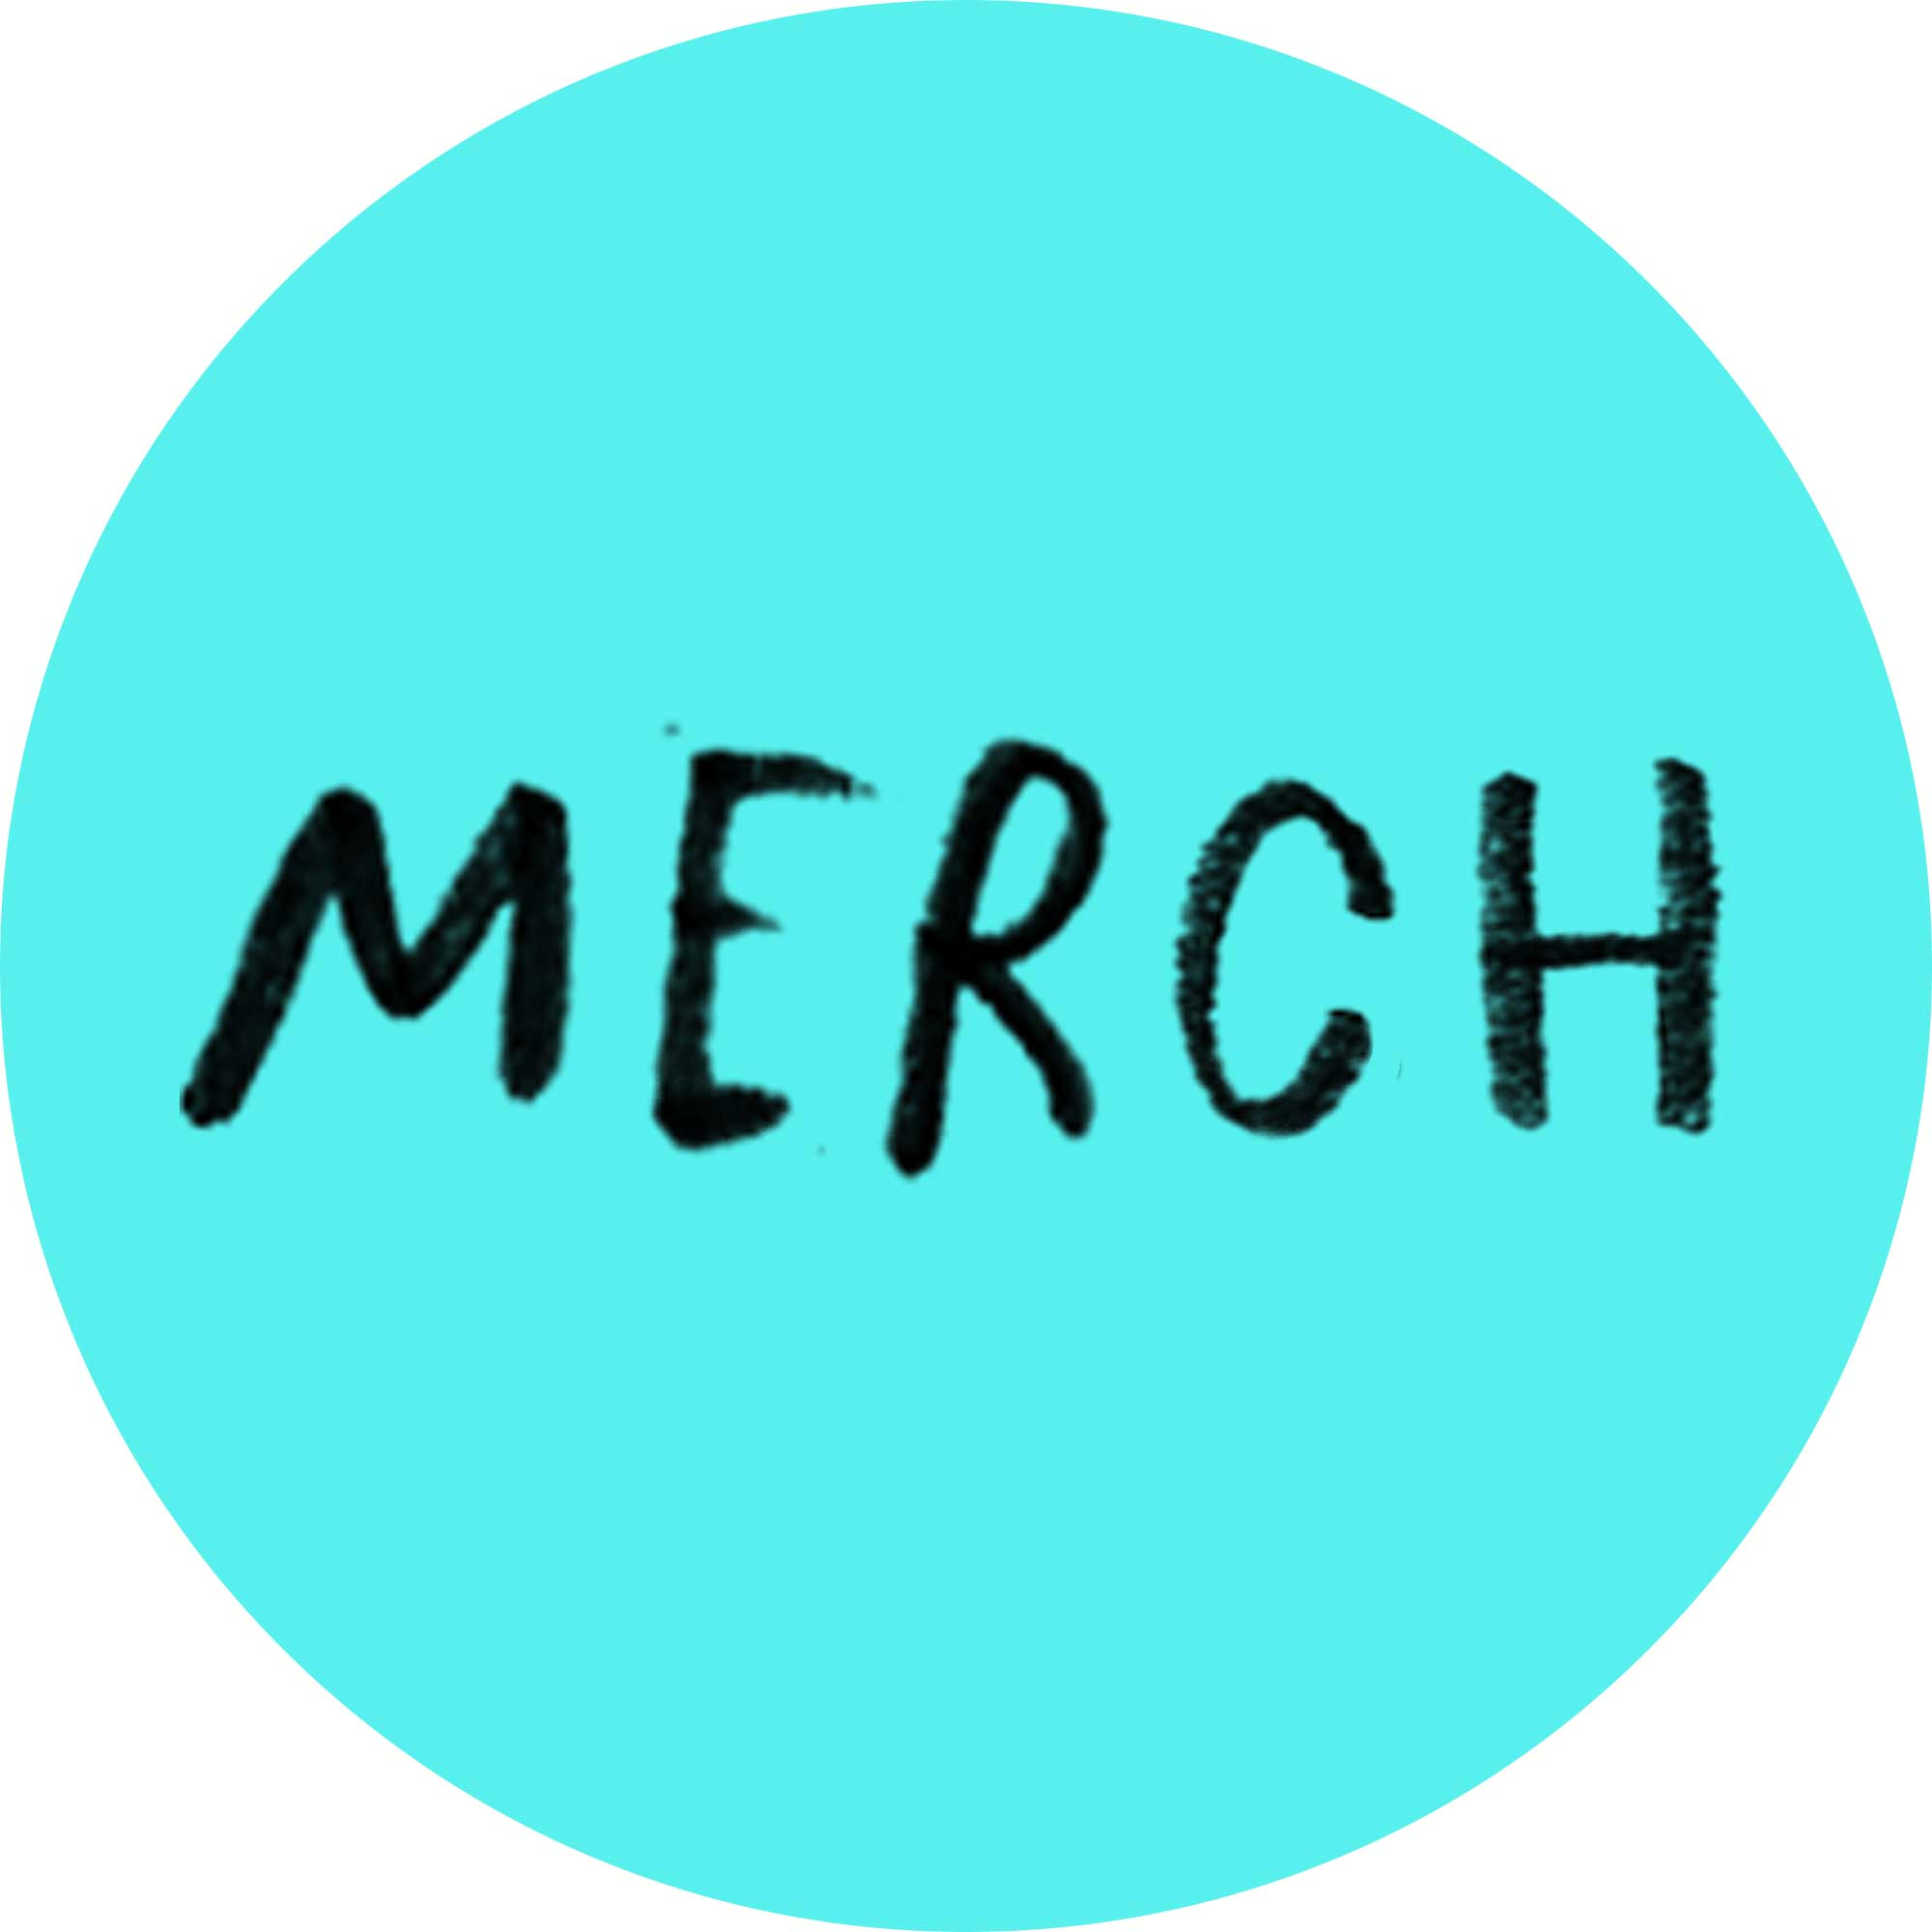 MERCH_button.jpg